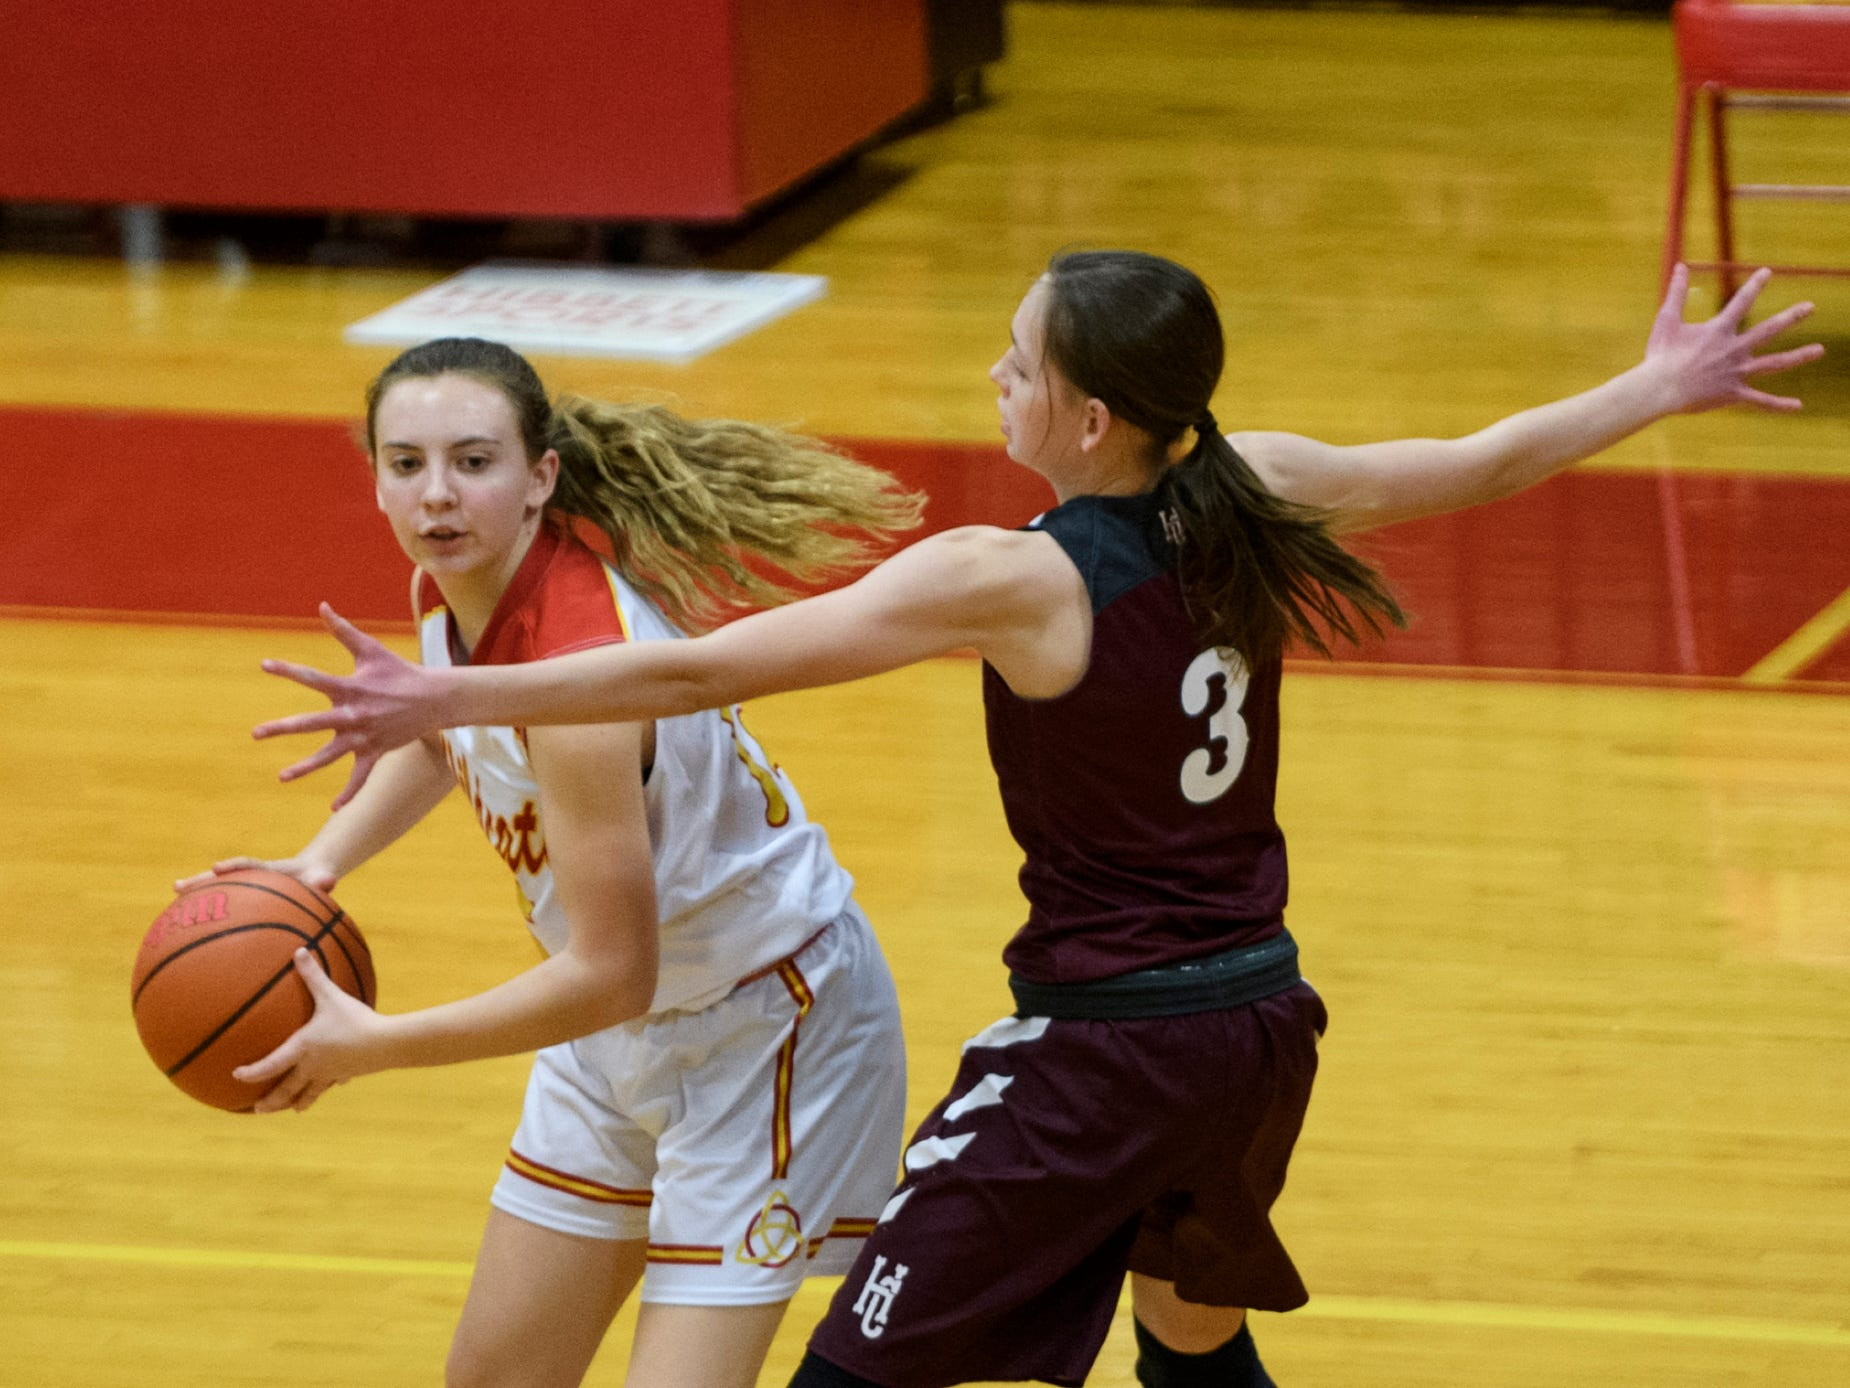 Henderson County's Jarie Thomas (3) guards Mater Dei's Taylor Gerth (15) during the fourth quarter at Mater Dei High School in Evansville, Tuesday, Dec. 11, 2018. The Lady Colonels defeated the Wildcats 53-40.